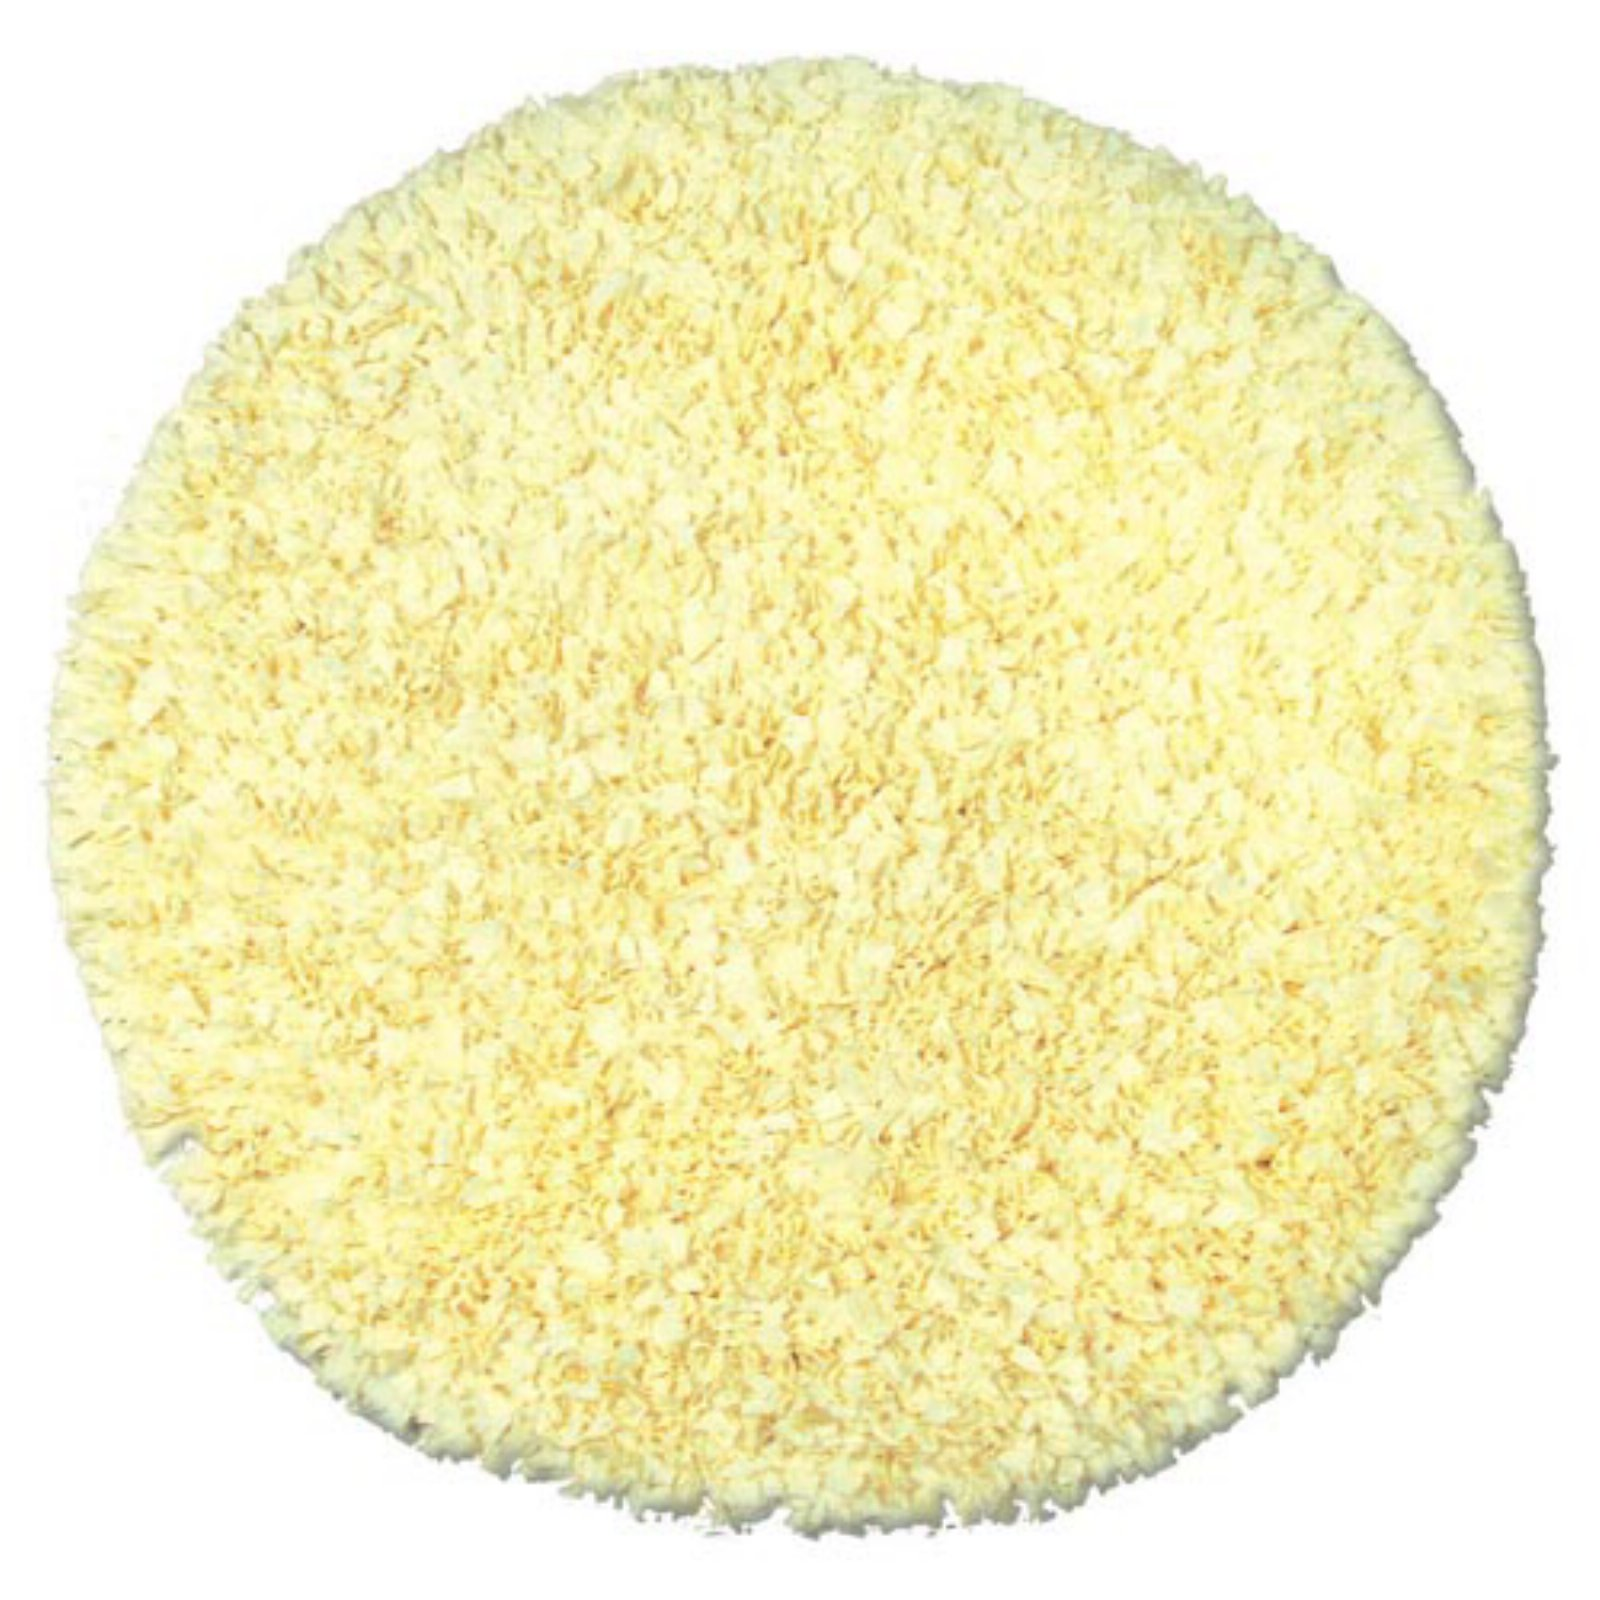 The Rug Market Shaggy Raggy Yellow Area Rug, Size 4' x 4'